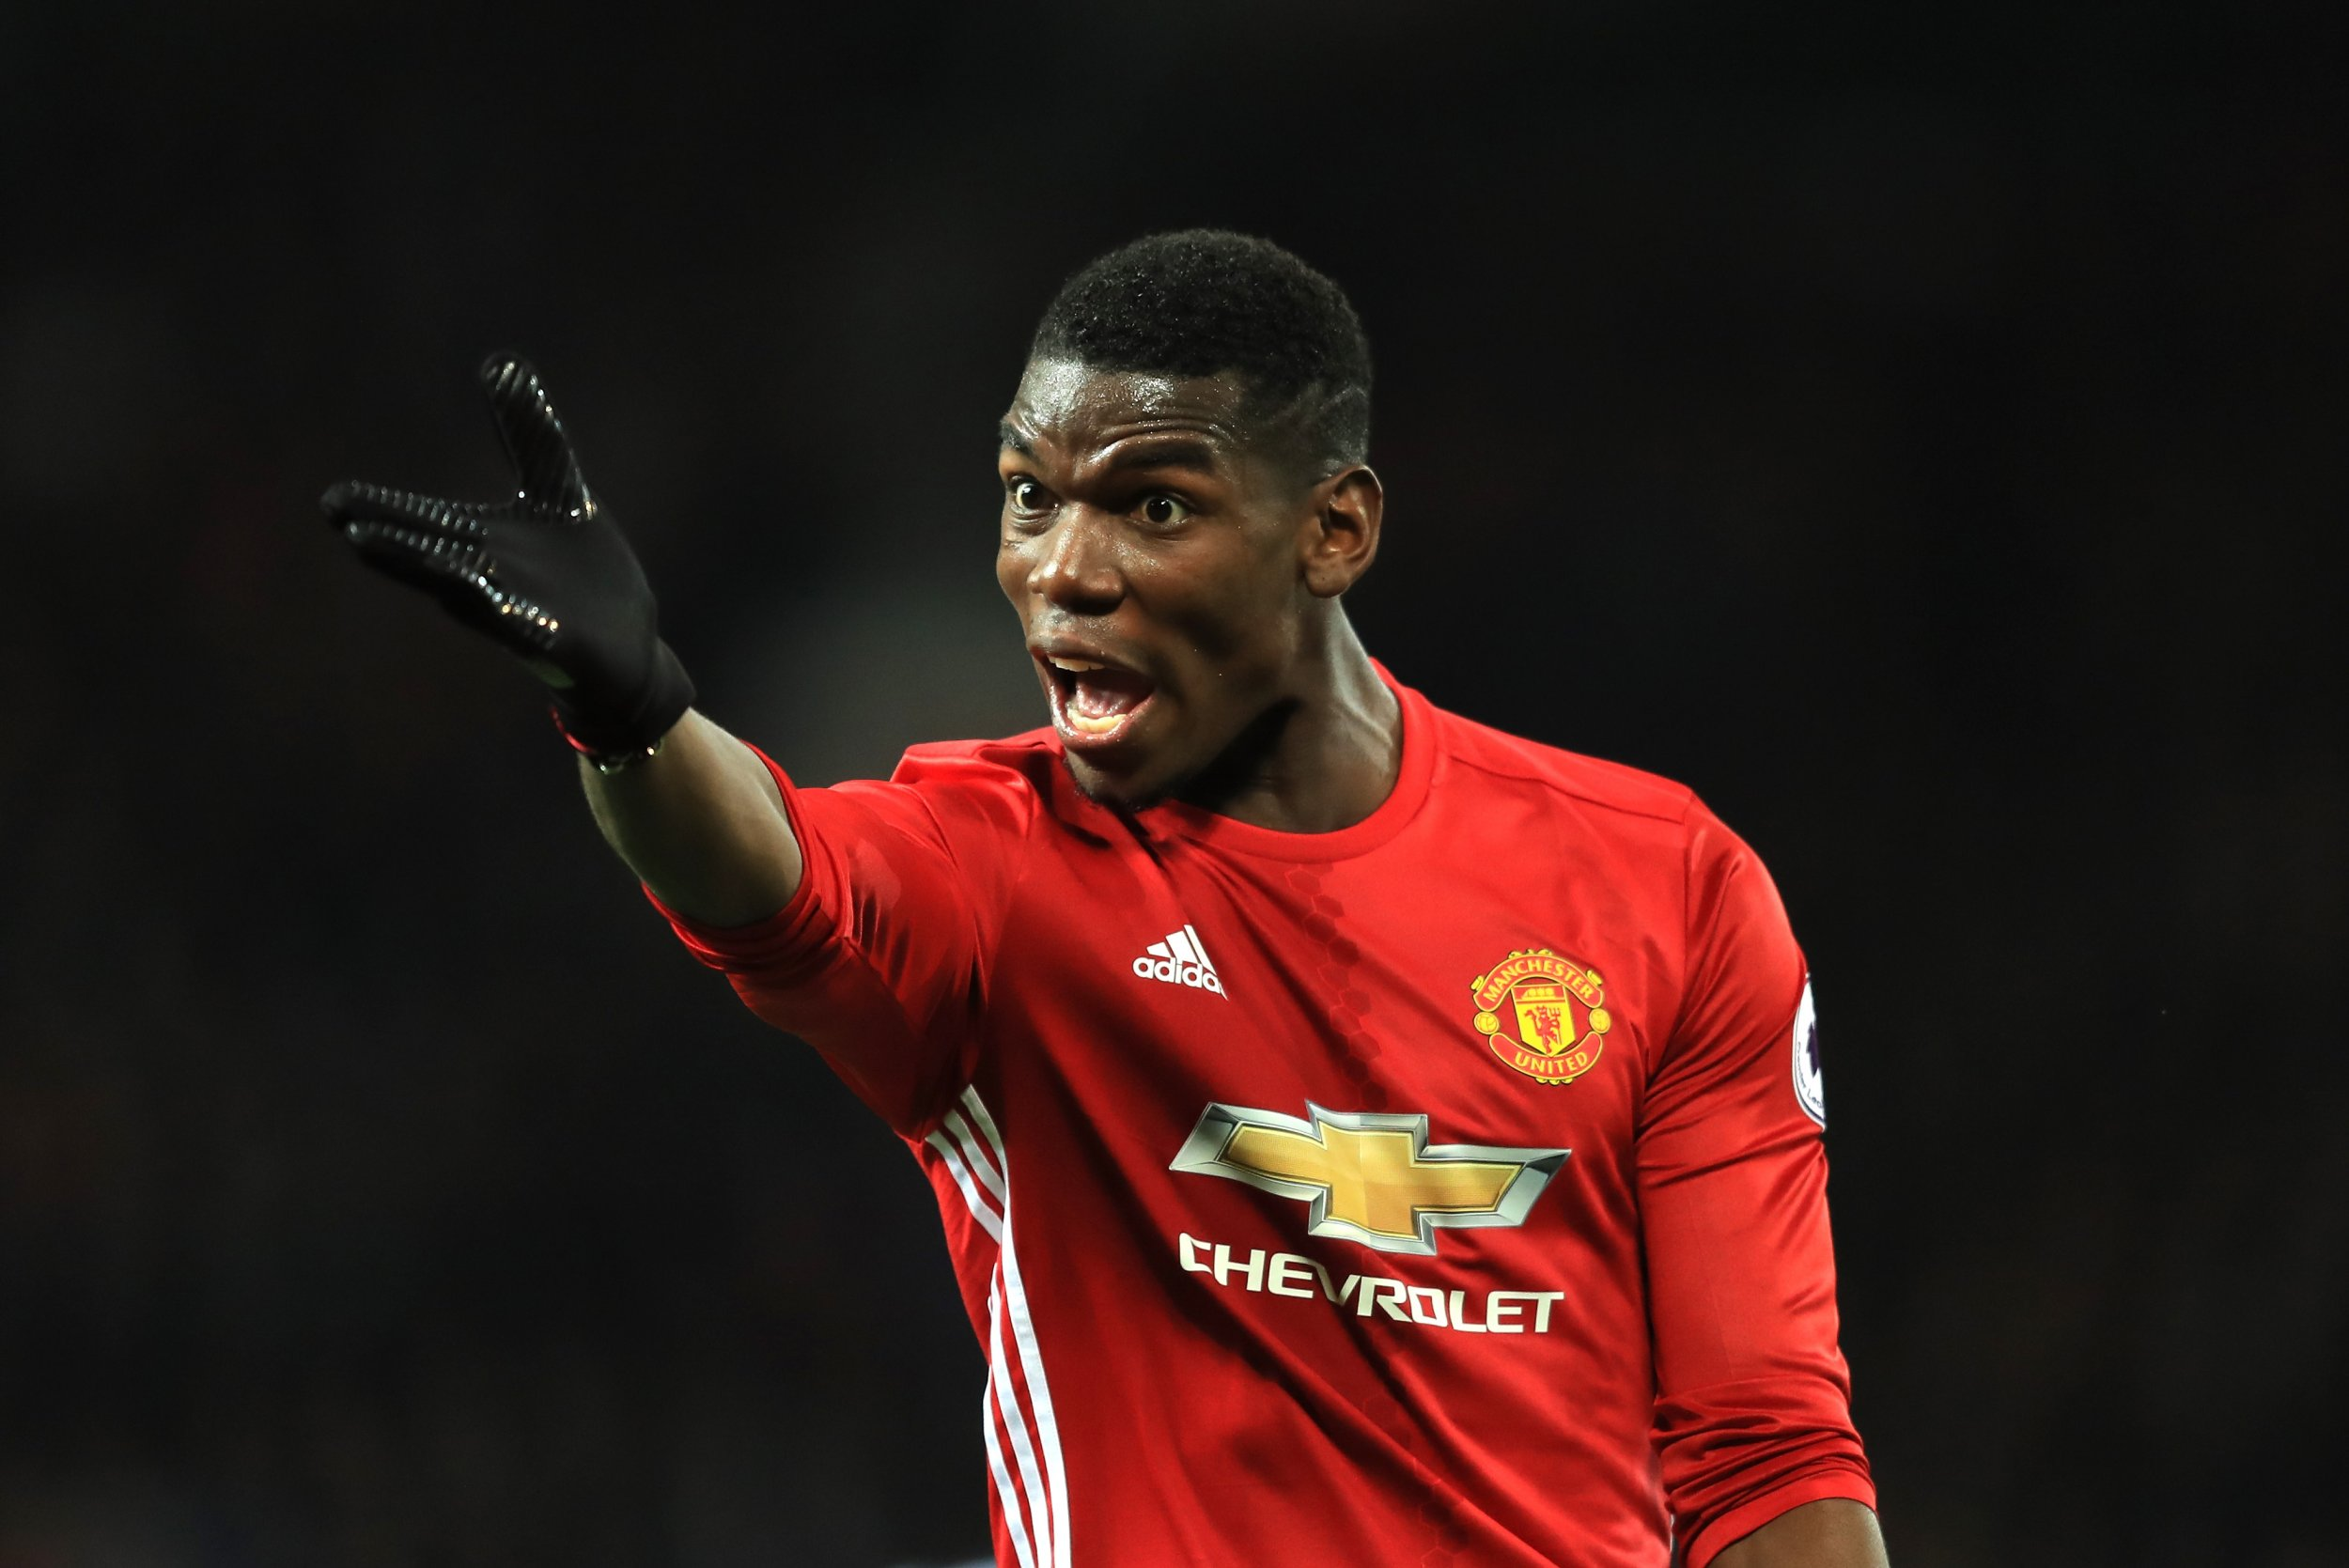 Paul Pogba How Manchester United Star Reacted to Facing His Brother